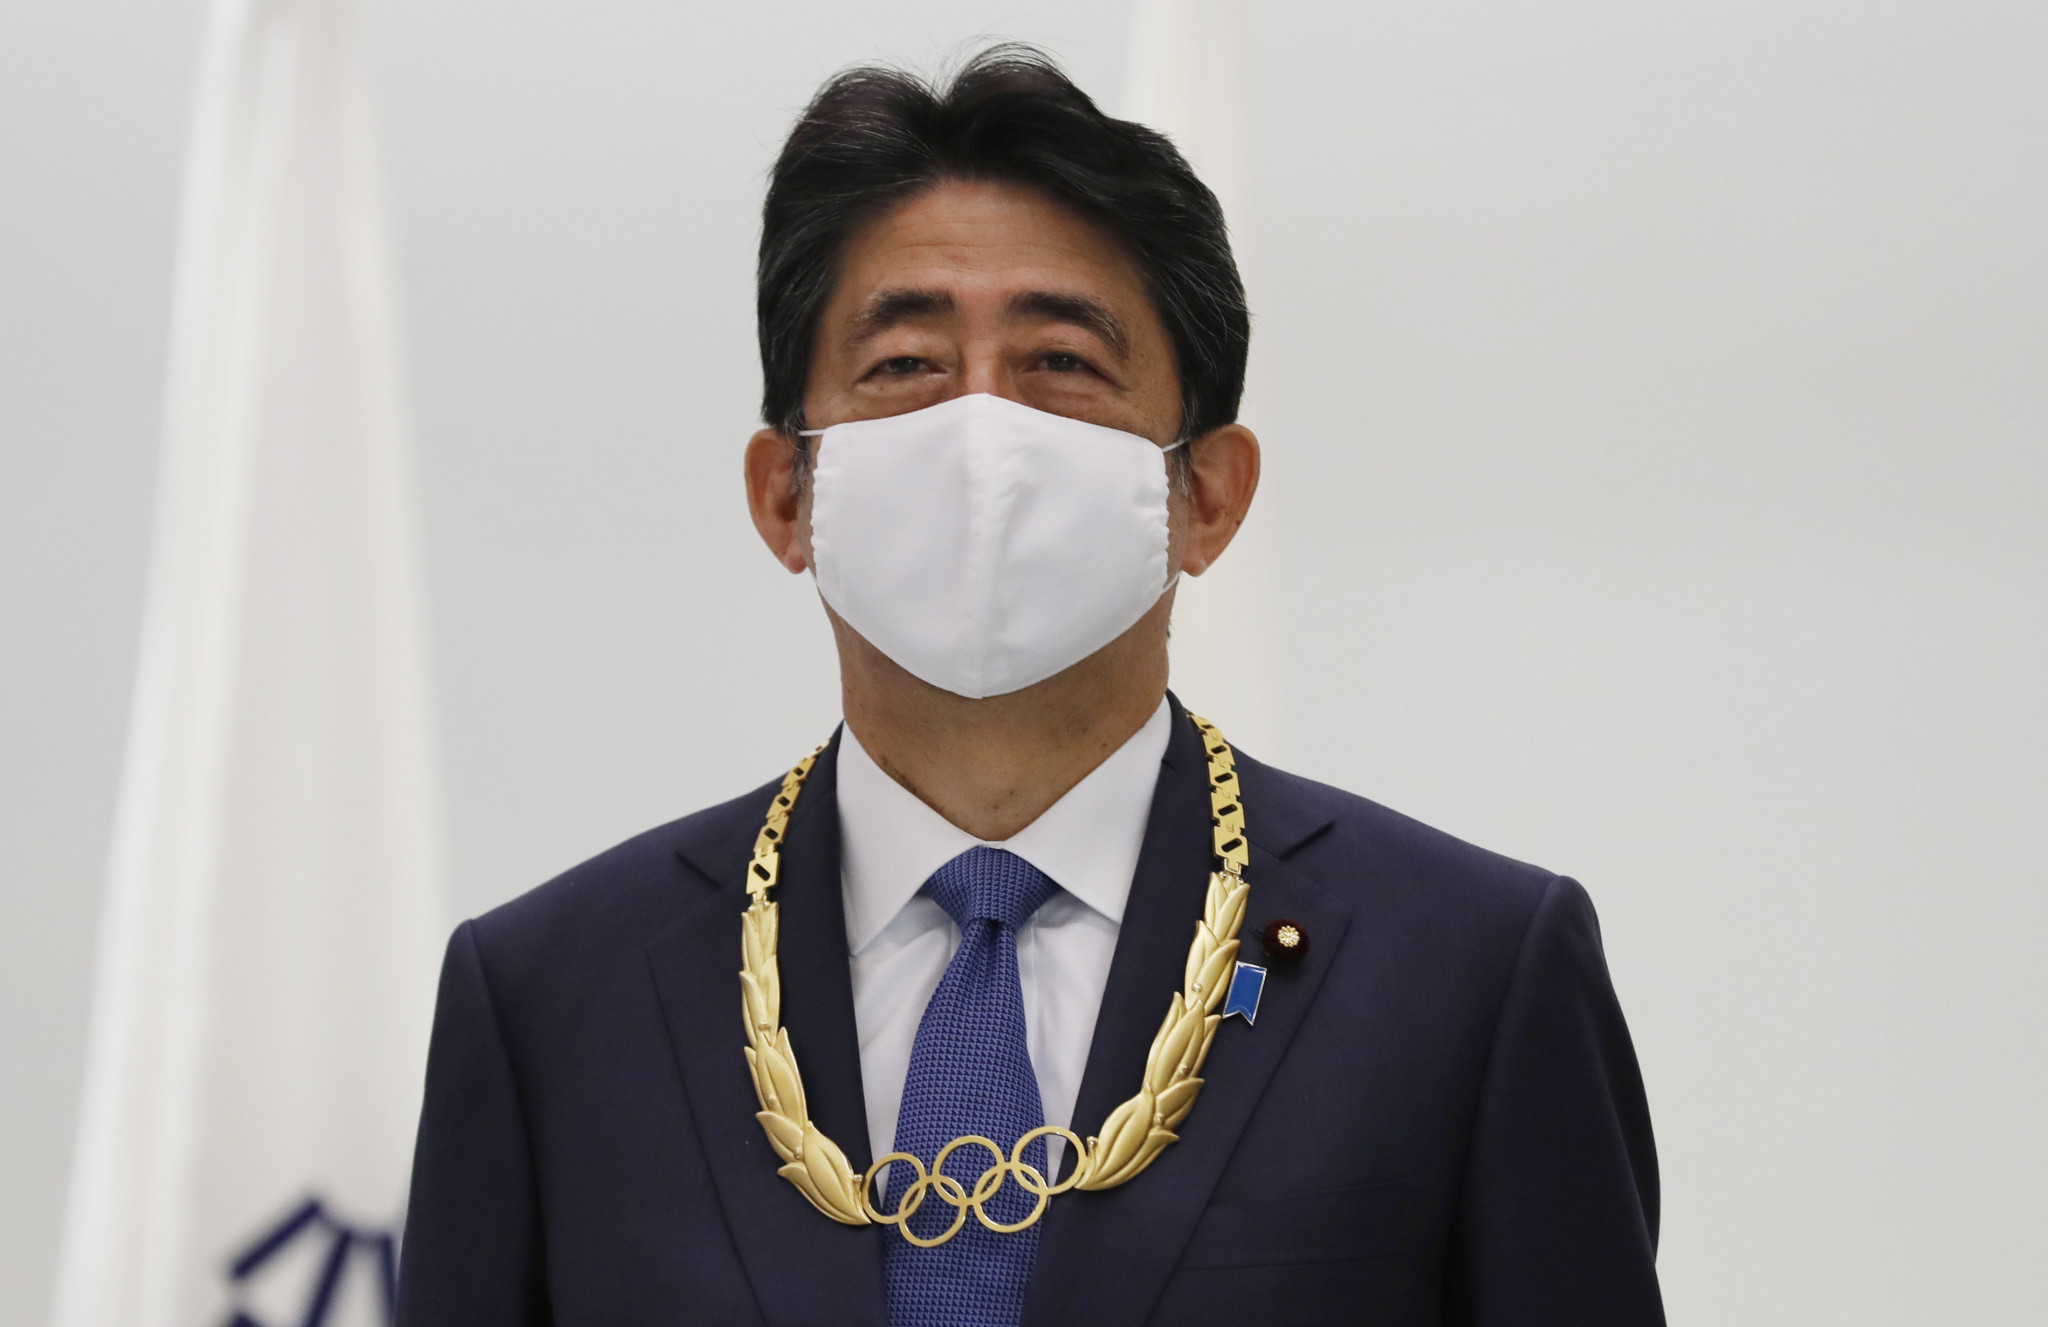 Former Japanese Prime Minister Shinzō Abe has been awarded the gold Olympic Order ©Getty Images